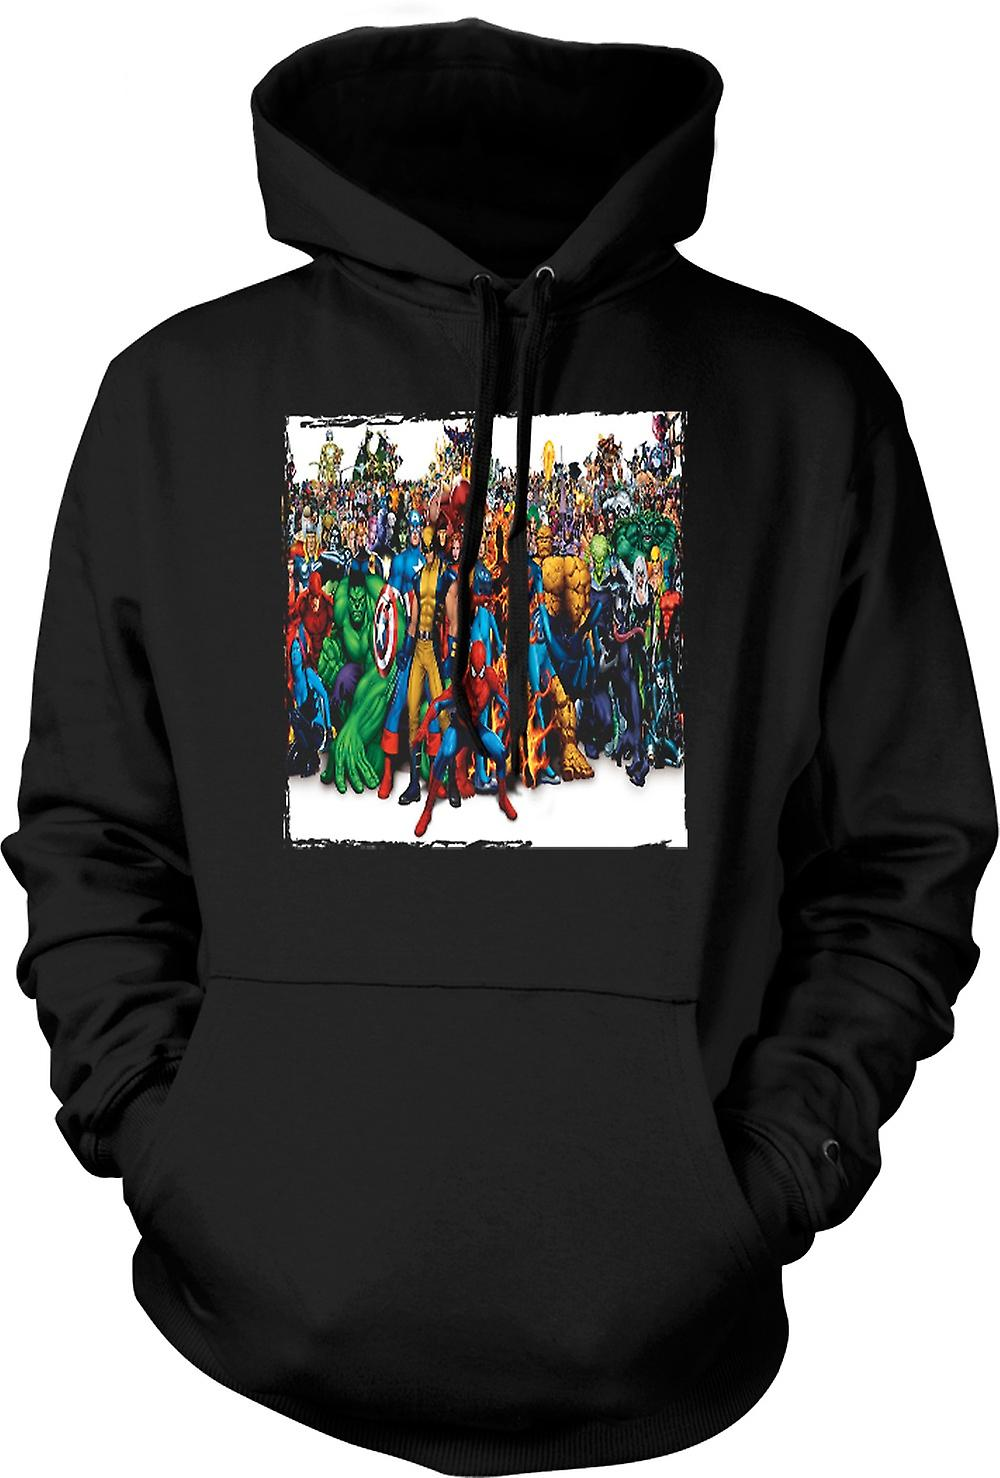 Barn Hoodie - Marvel Comic Hero grupp - porträtt